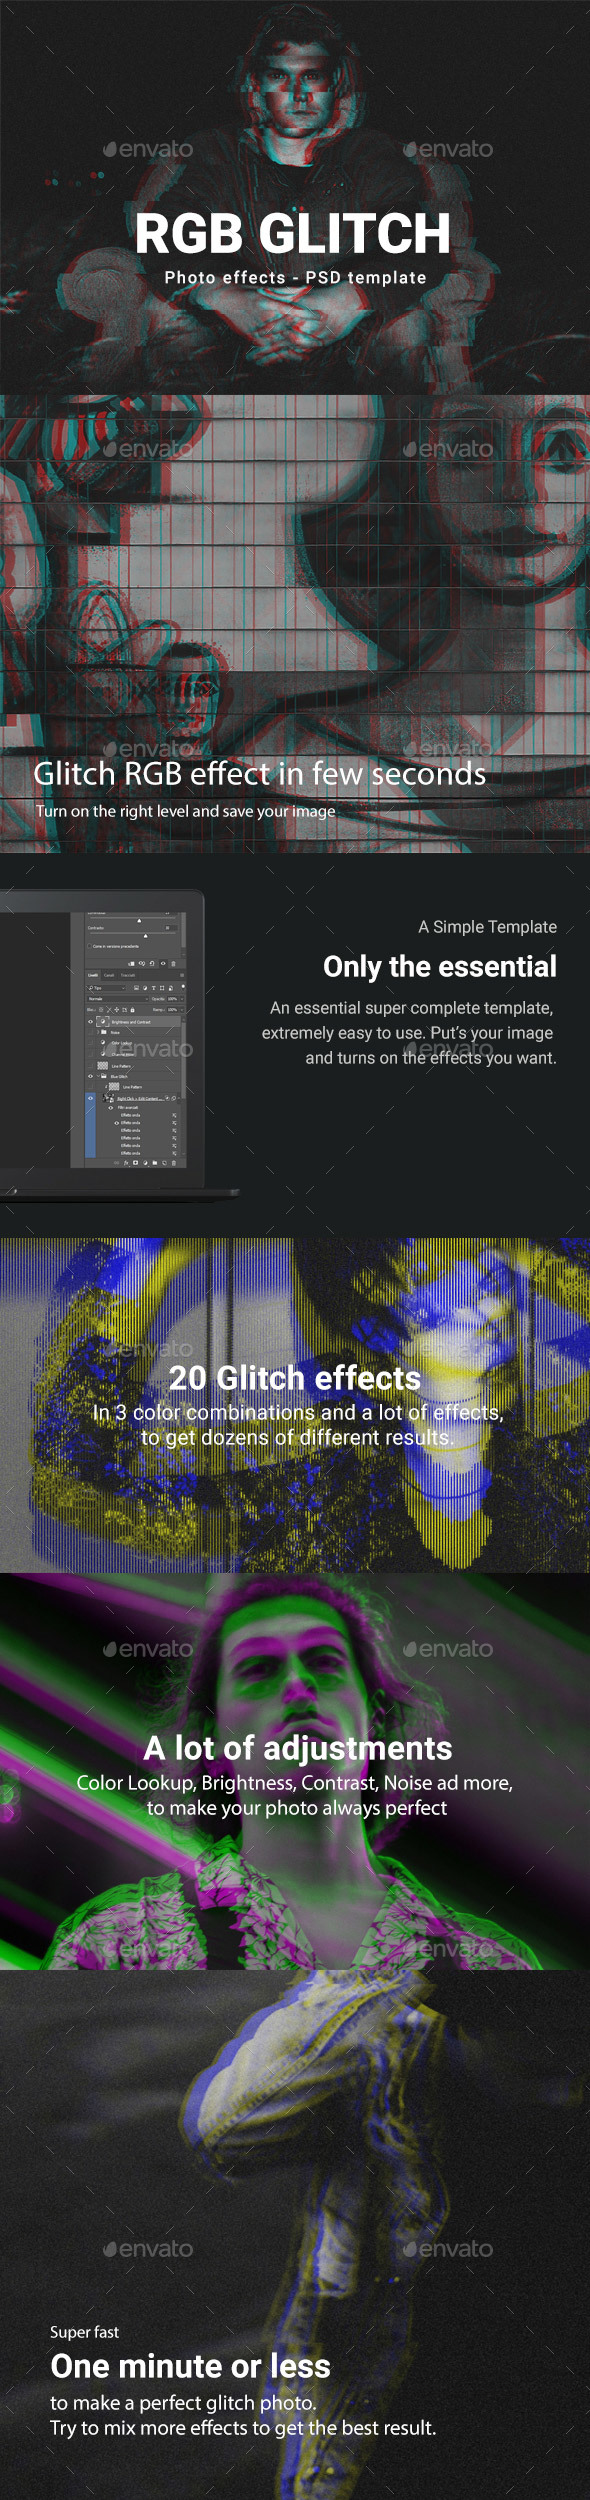 RGB Glitch Photoshop Template - Tech / Futuristic Photo Templates